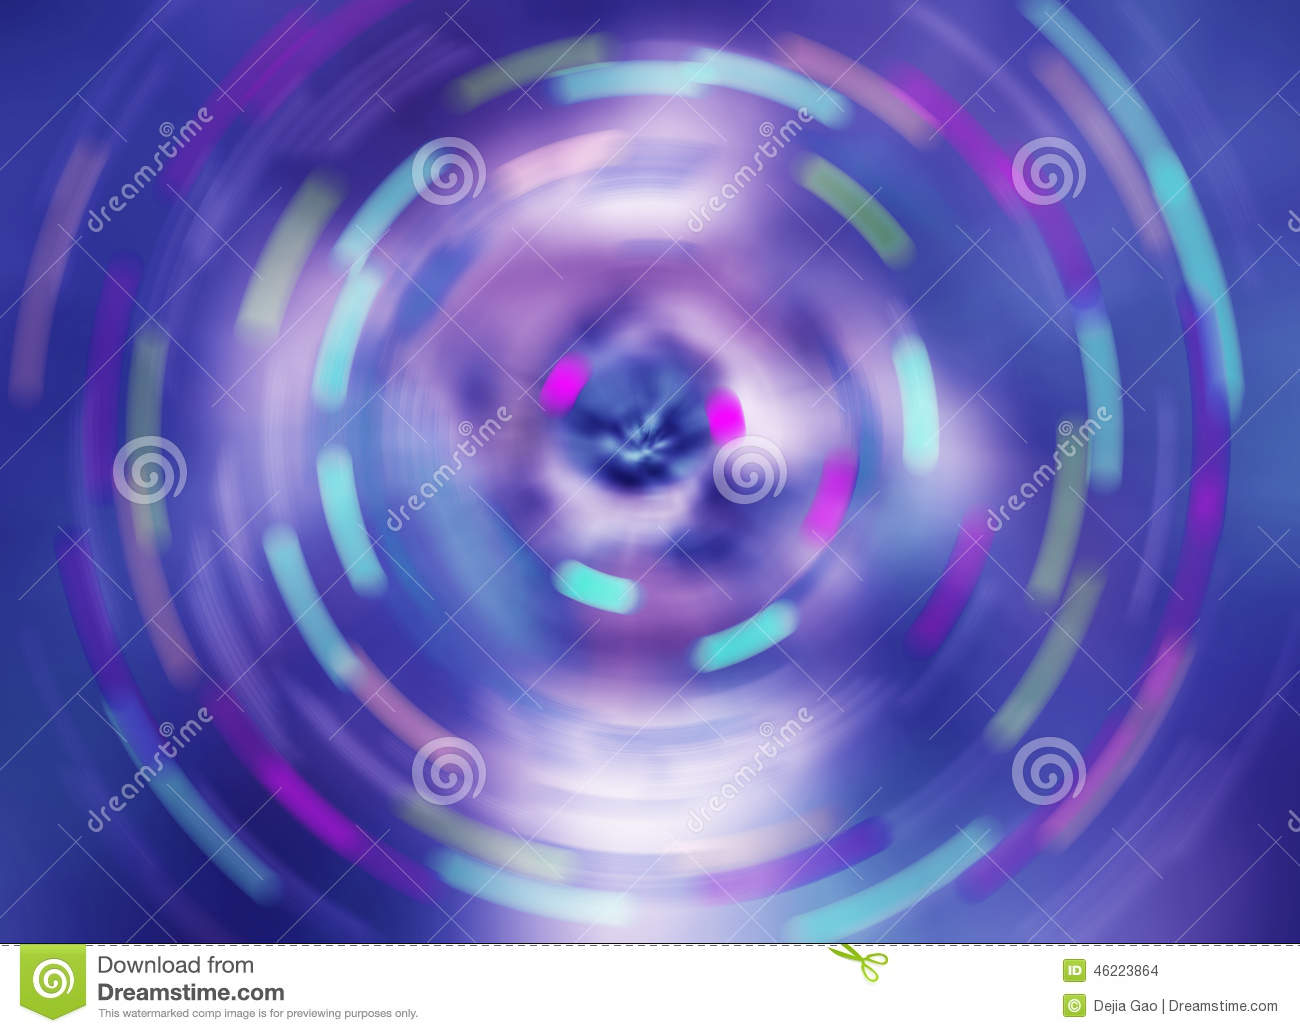 Background image rotate - Abstract Blue Spin Spinning Background Stock Images